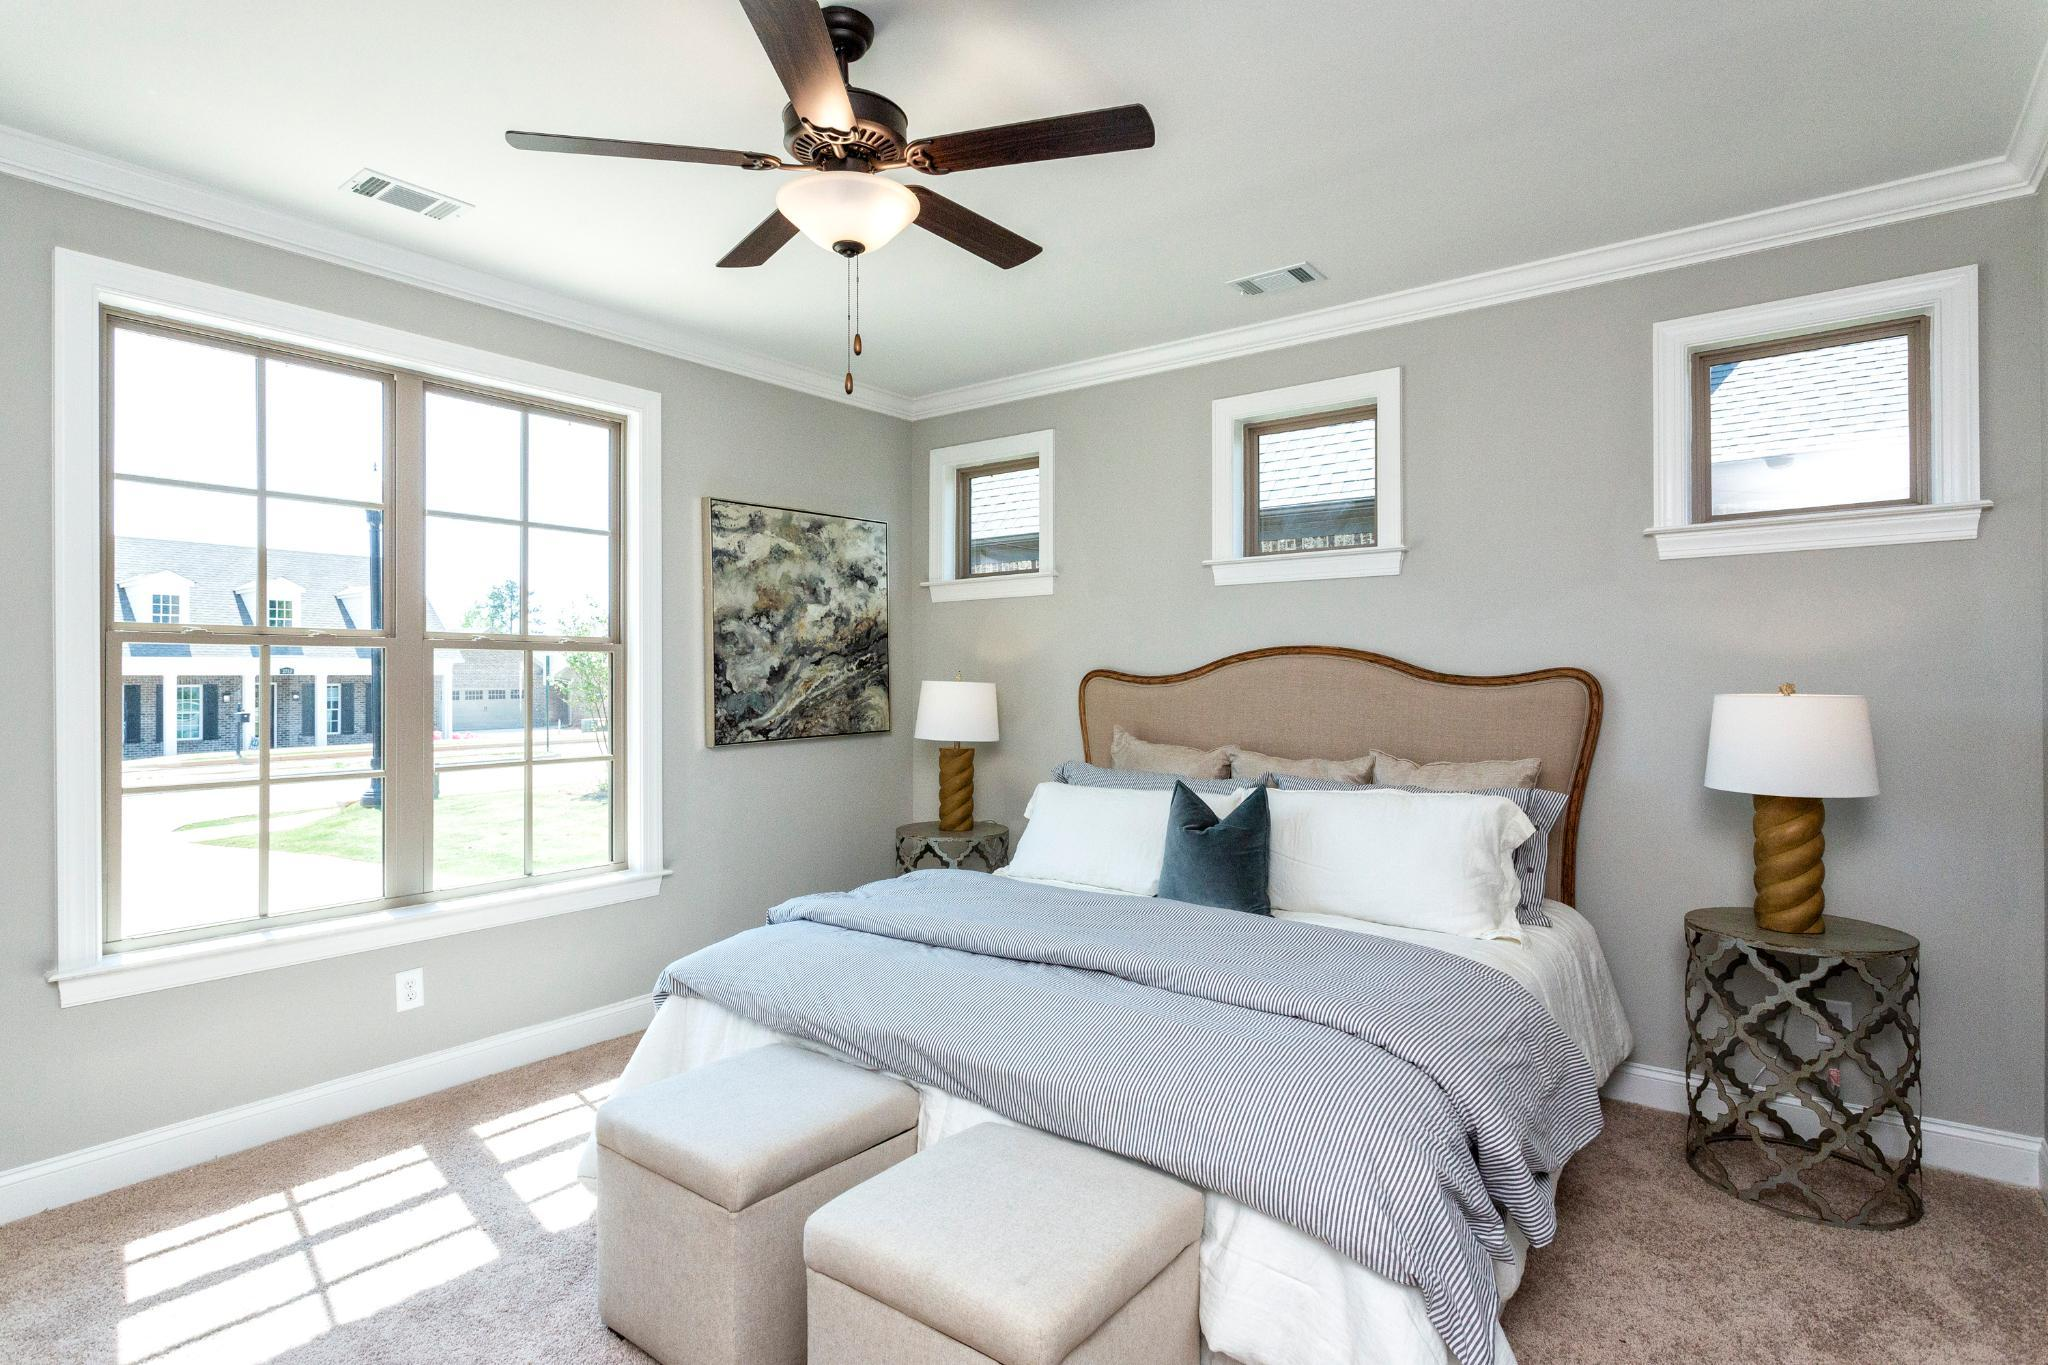 Bedroom featured in the Collinwood By Harris Doyle Homes Inc in Birmingham, AL